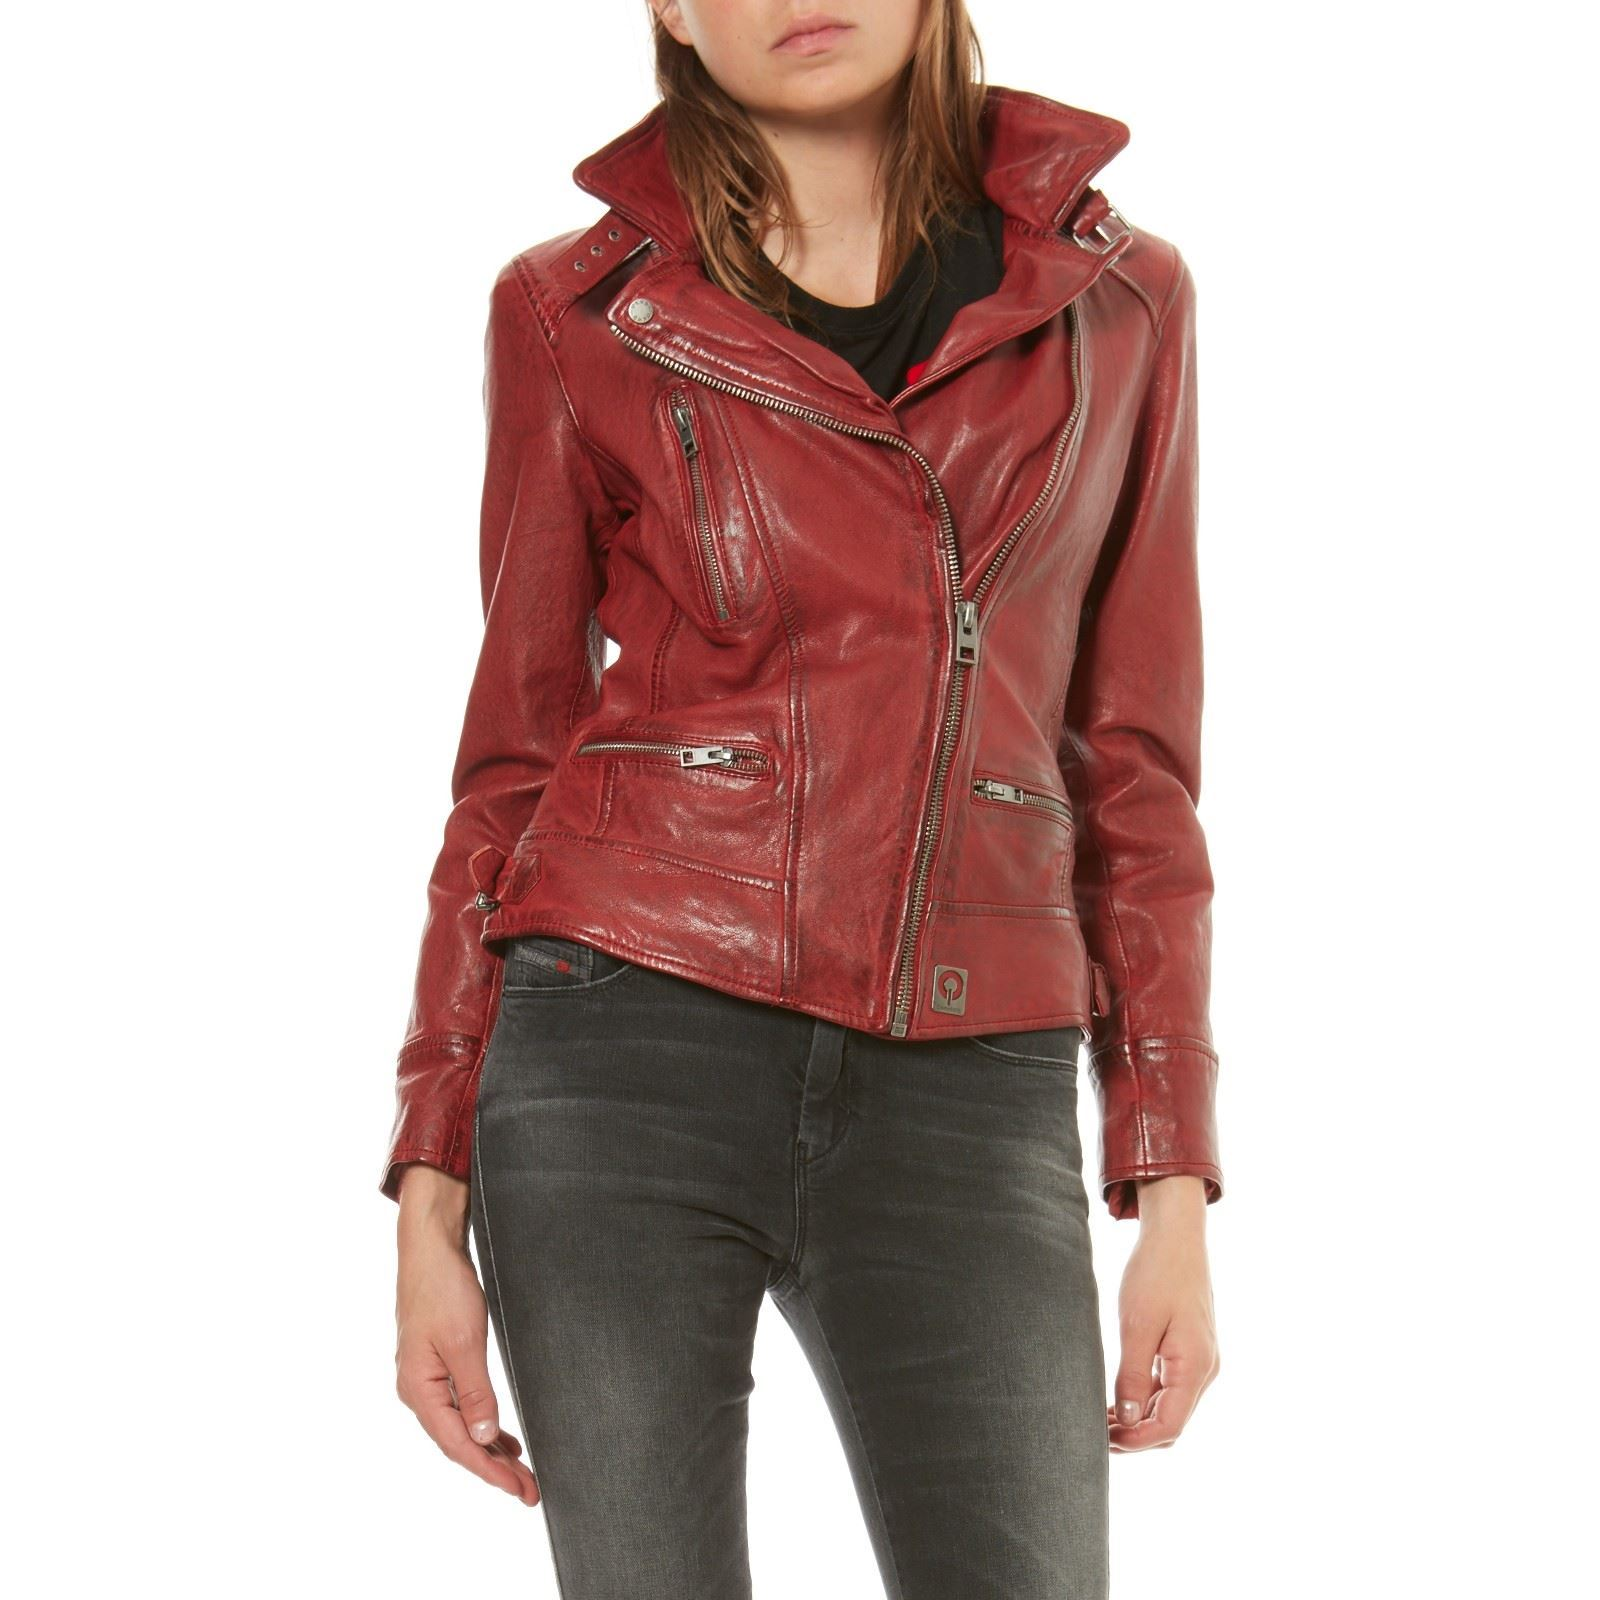 Oakwood Video - Veste en cuir de mouton - rouge   BrandAlley d31de8f4d130